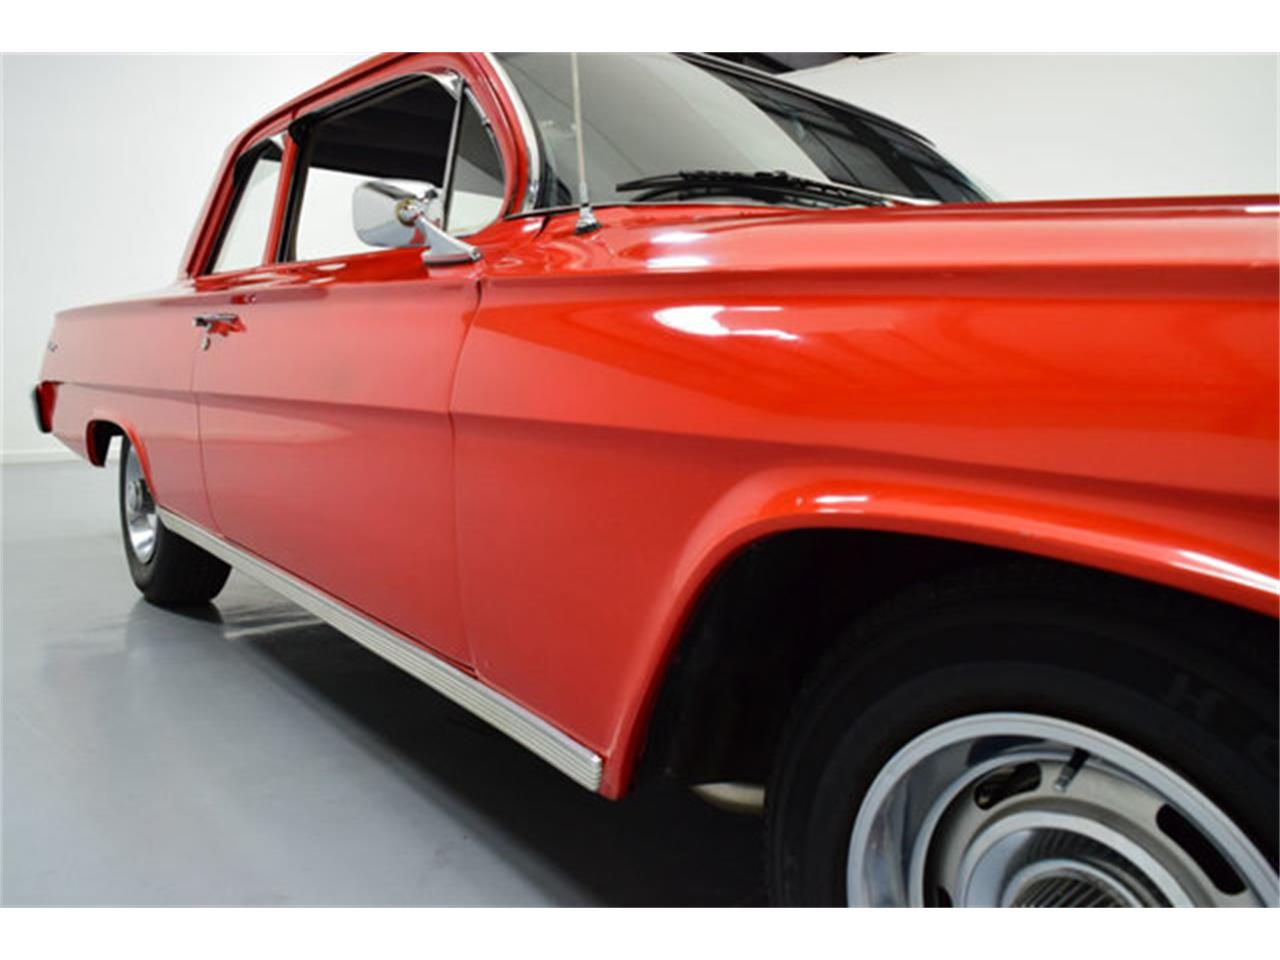 Large Picture of Classic 1962 Chevrolet Biscayne located in North Carolina - $15,995.00 - L7HW